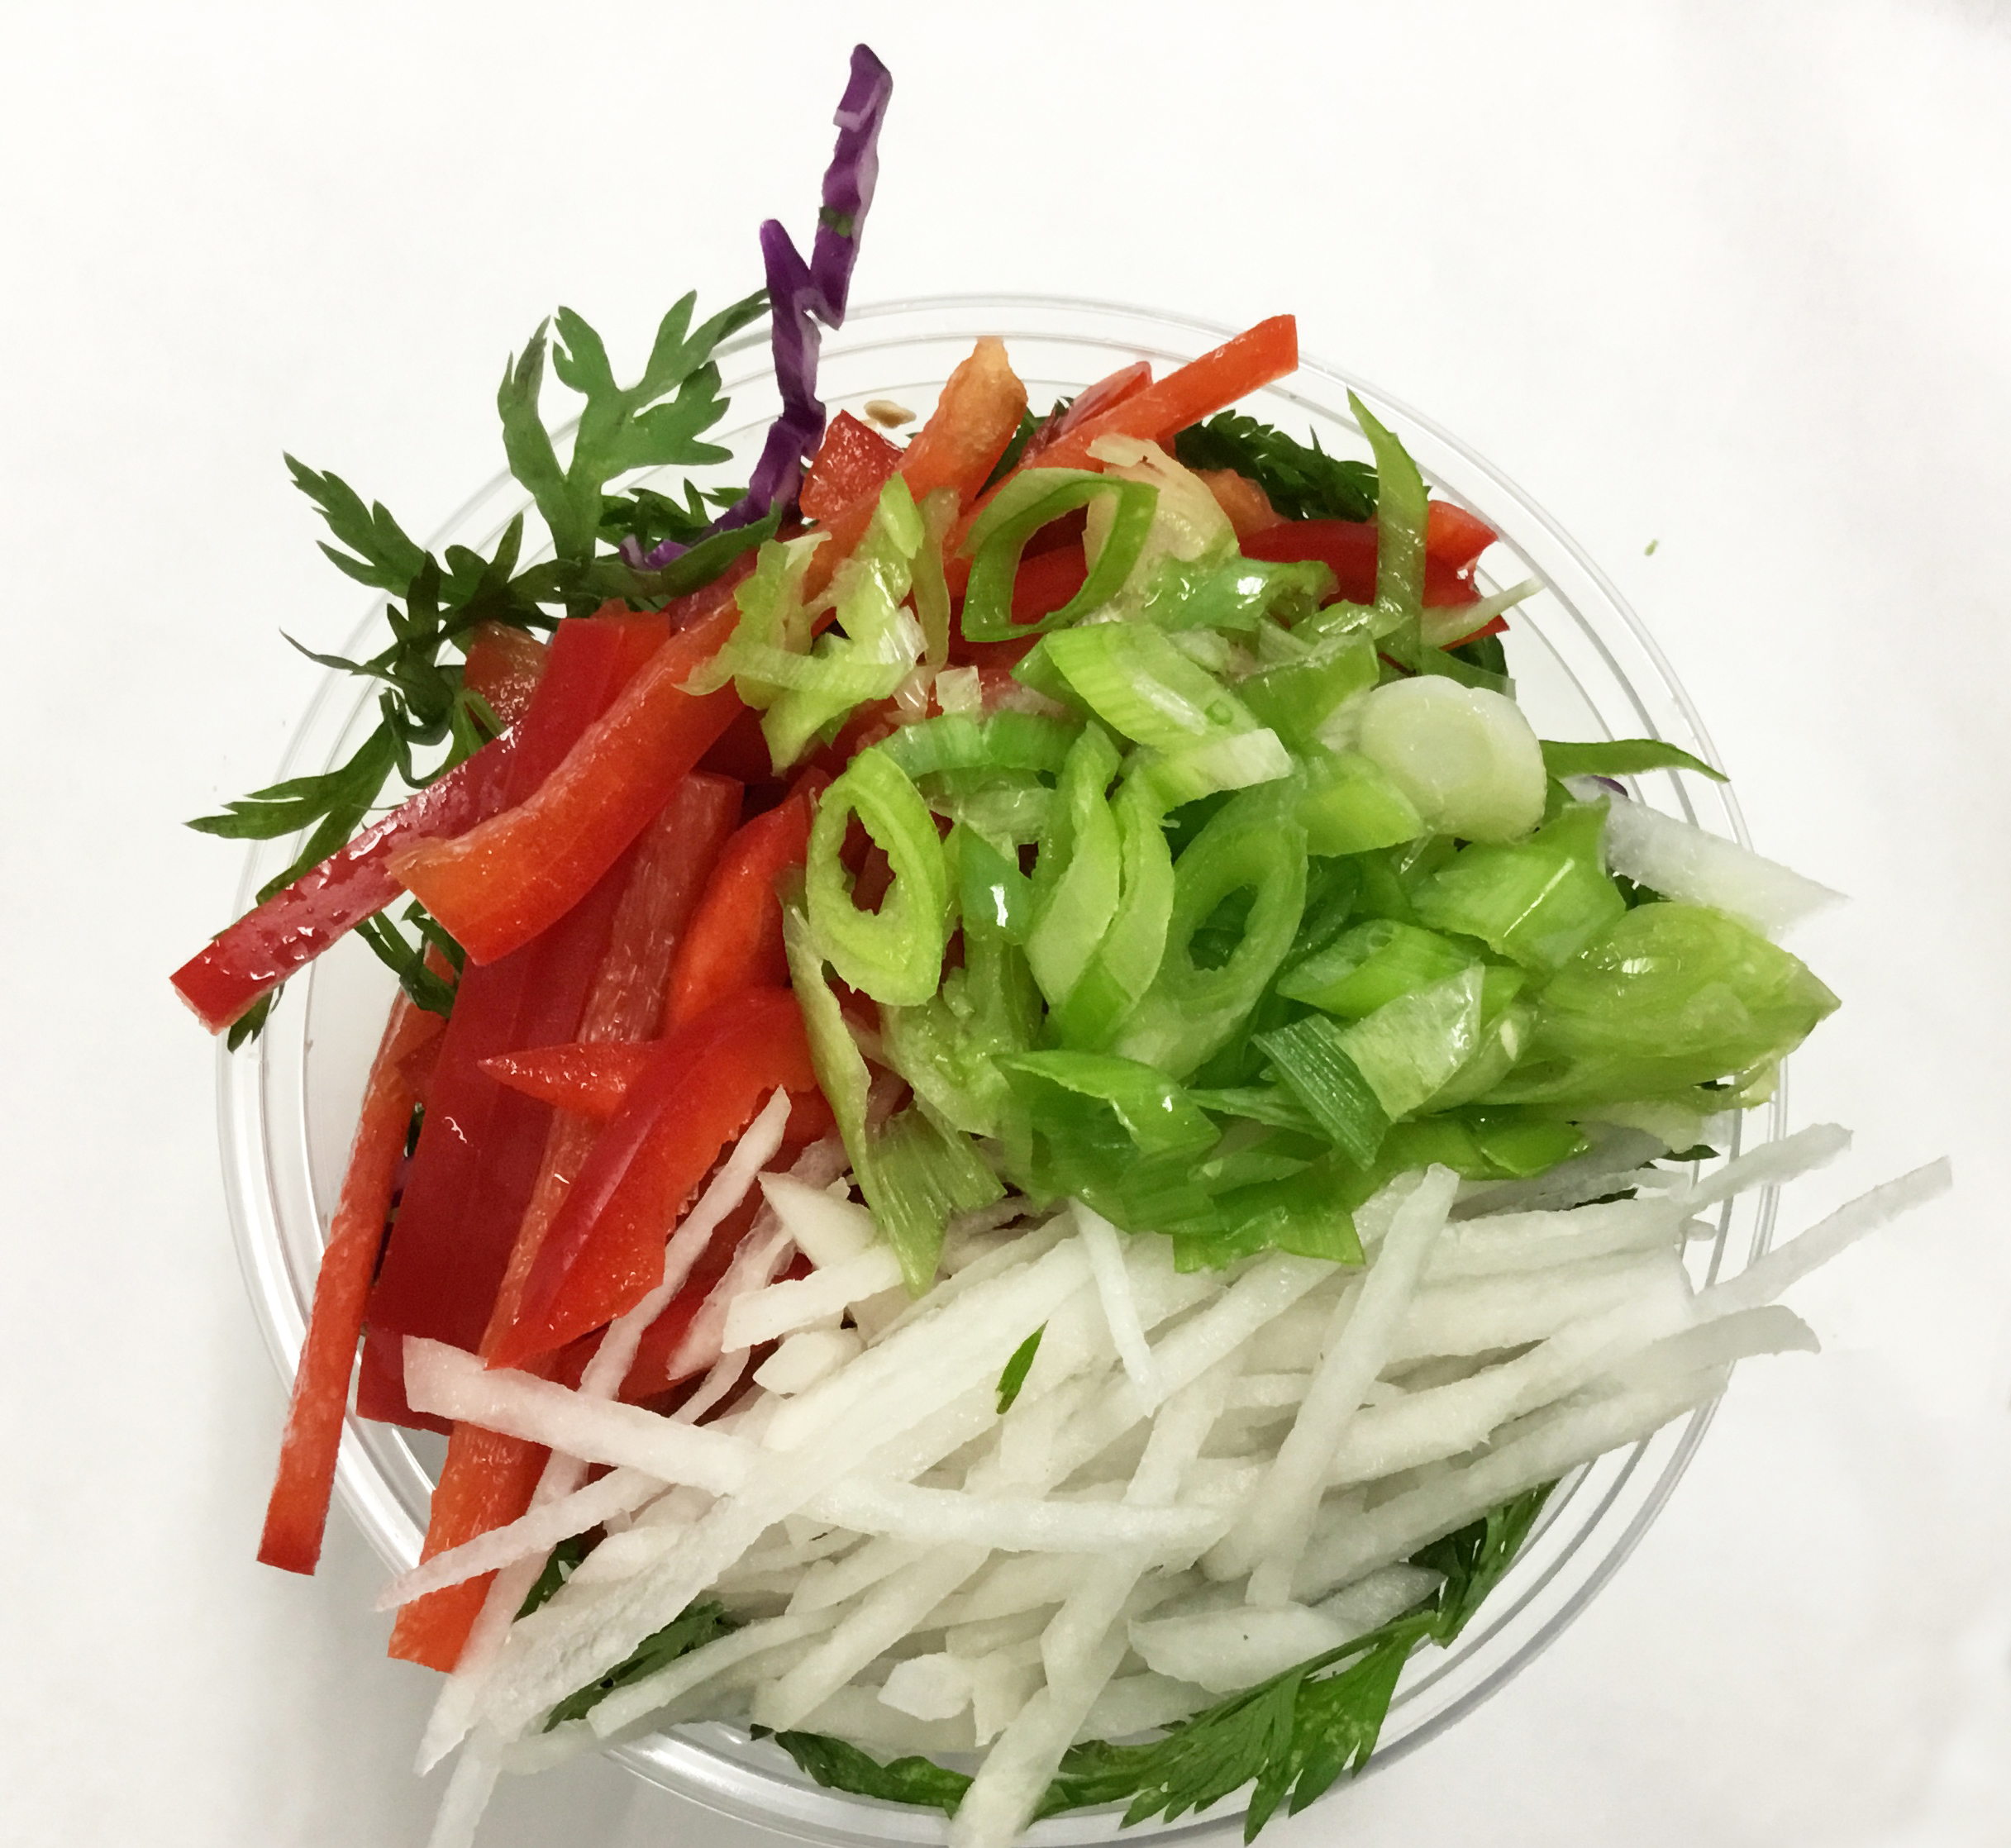 Red cabbage, red bell peppers, scallions, daikon radish and carrot tops.